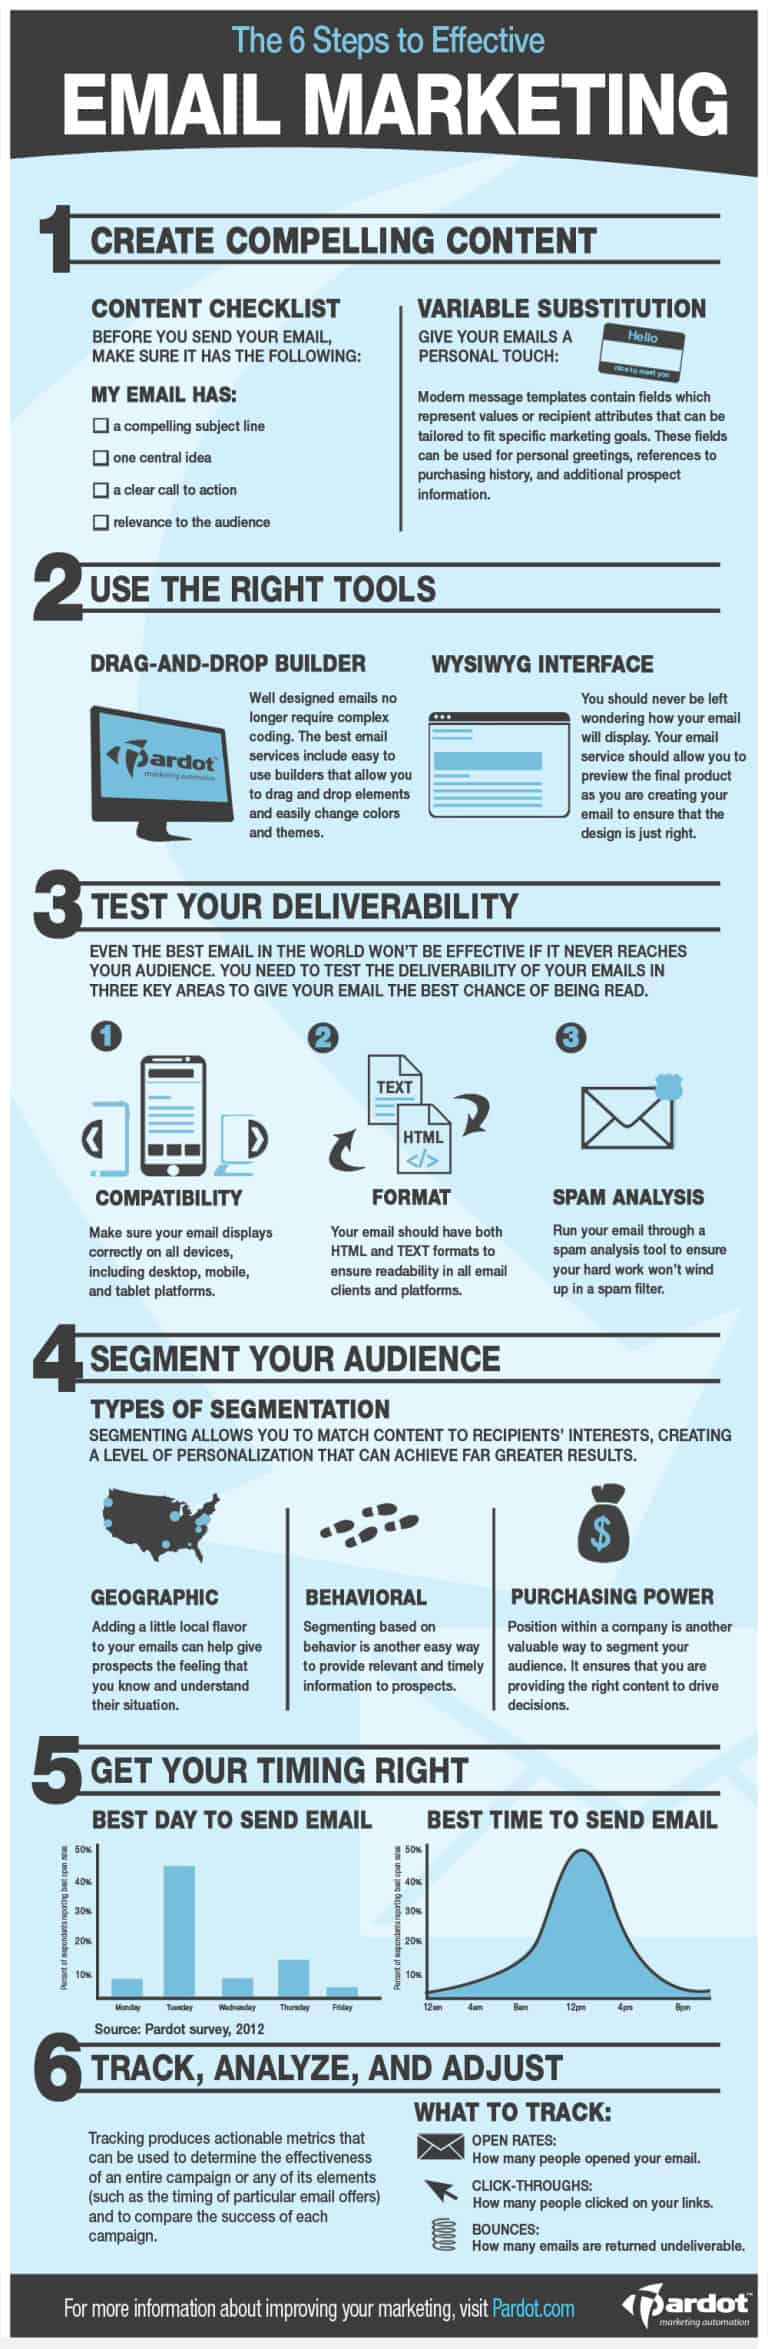 After learning all the relevant statistics, check out these 6 steps to effective email marketing, in this great infographic.